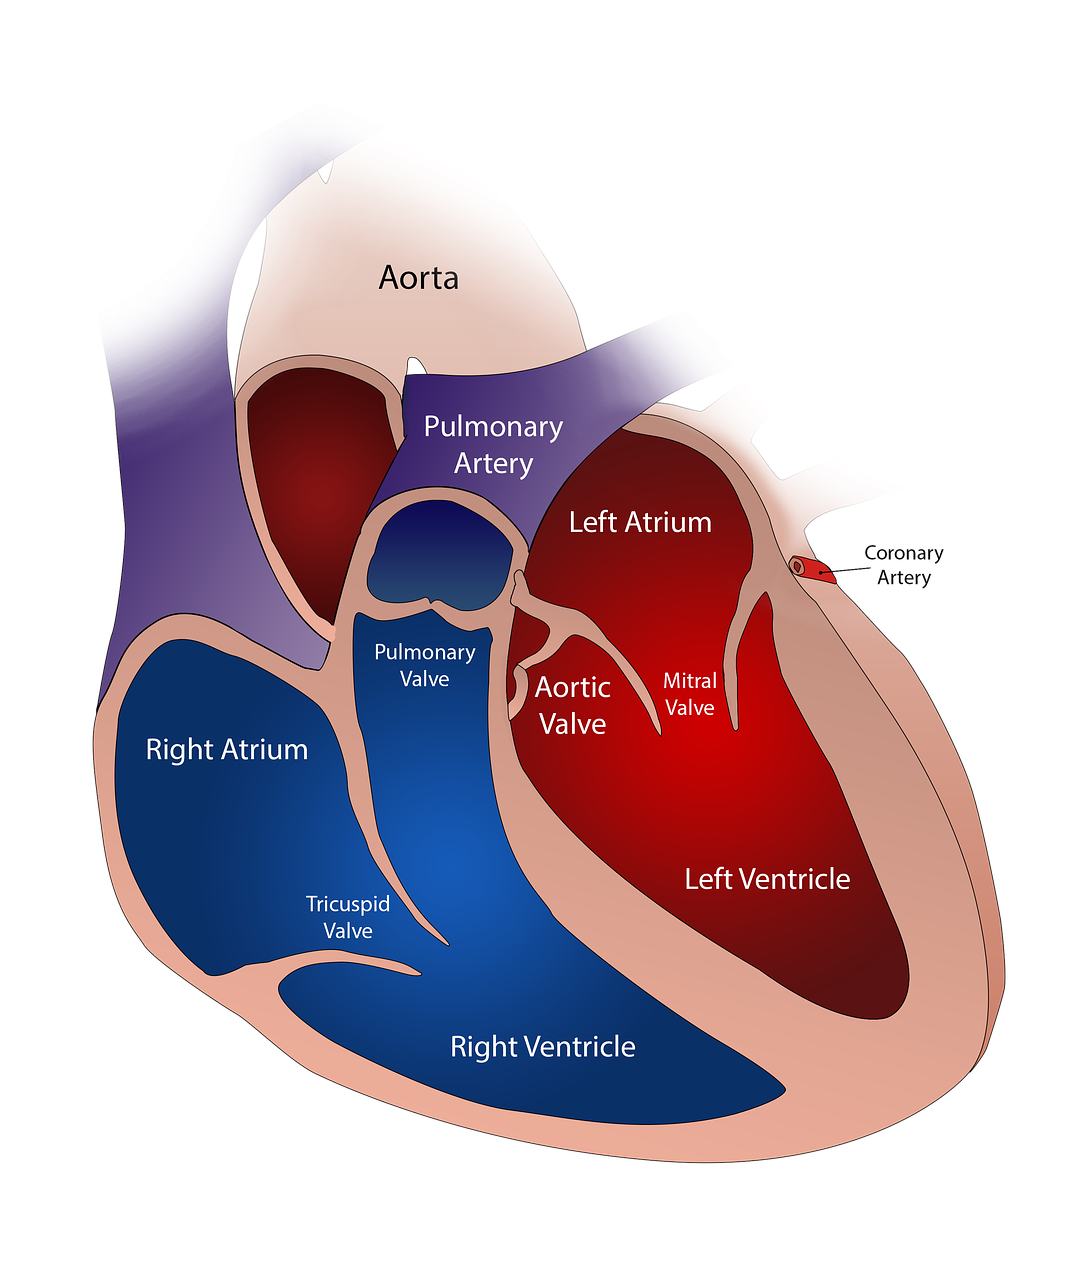 Engineering a better heart valve the human heart has four valves aortic pulmonary mitral and tricuspid when blood is pumped through the heart it passes in one direction like a one way ccuart Image collections